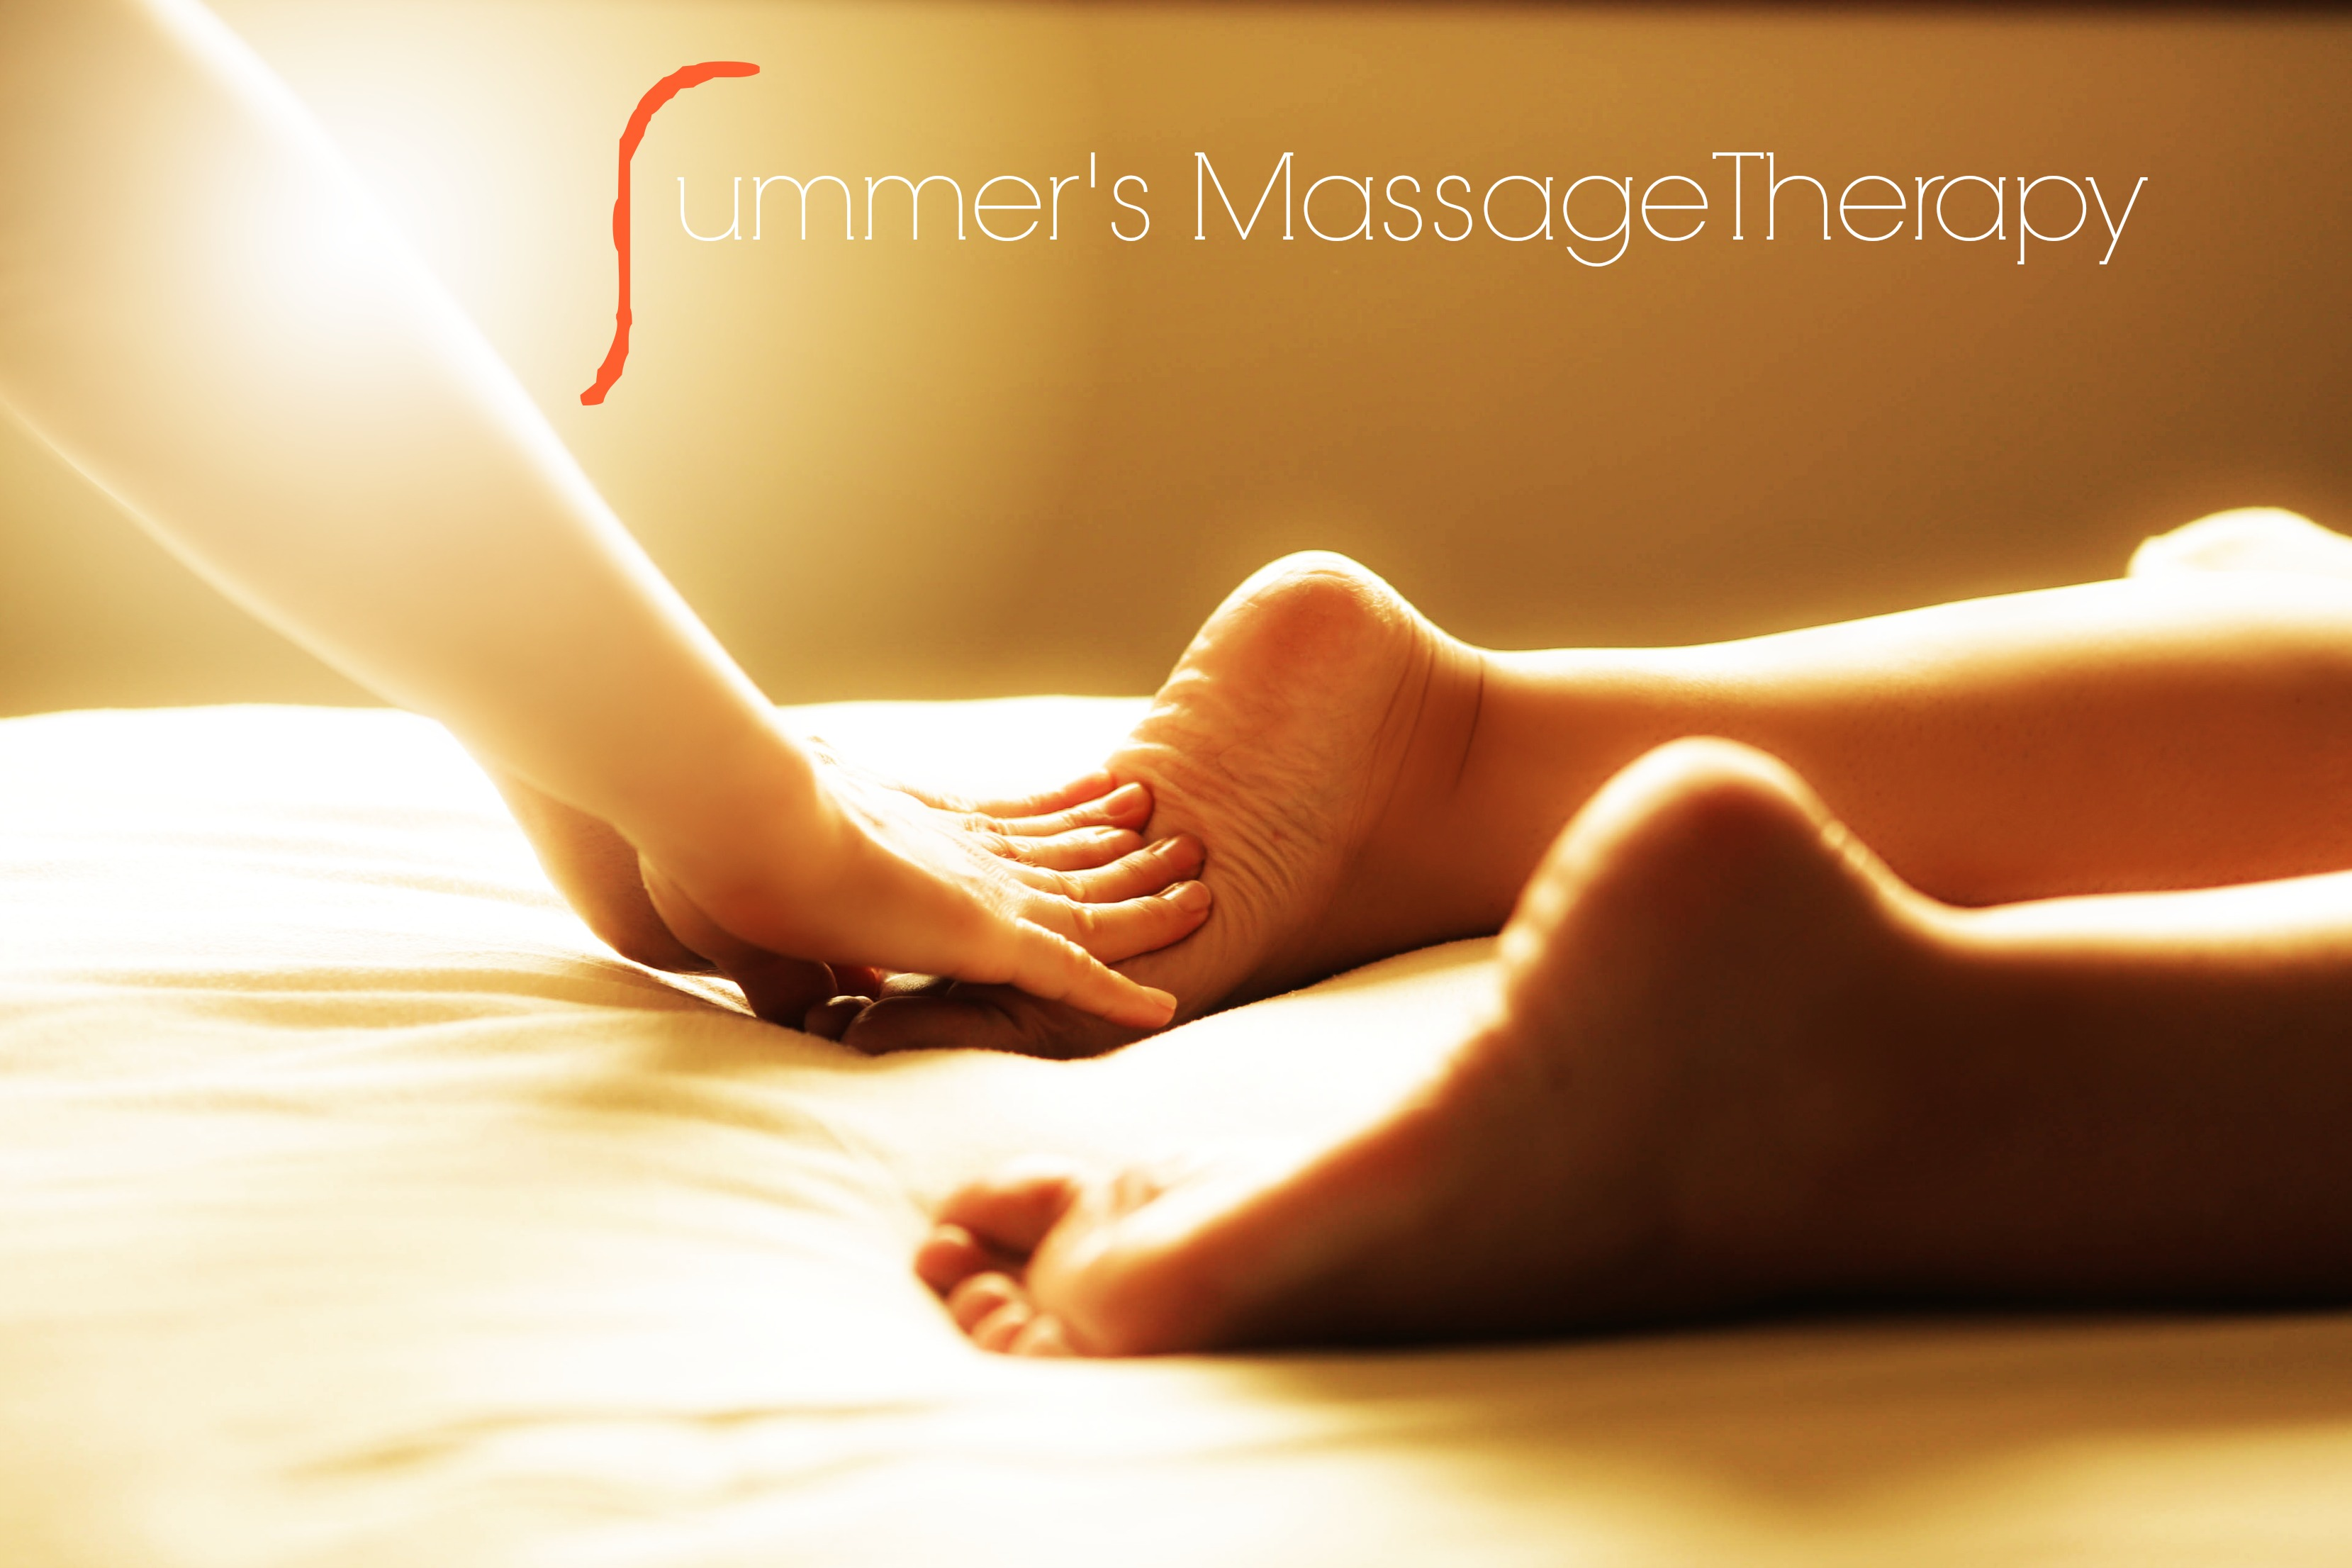 Summers Massage Therapy